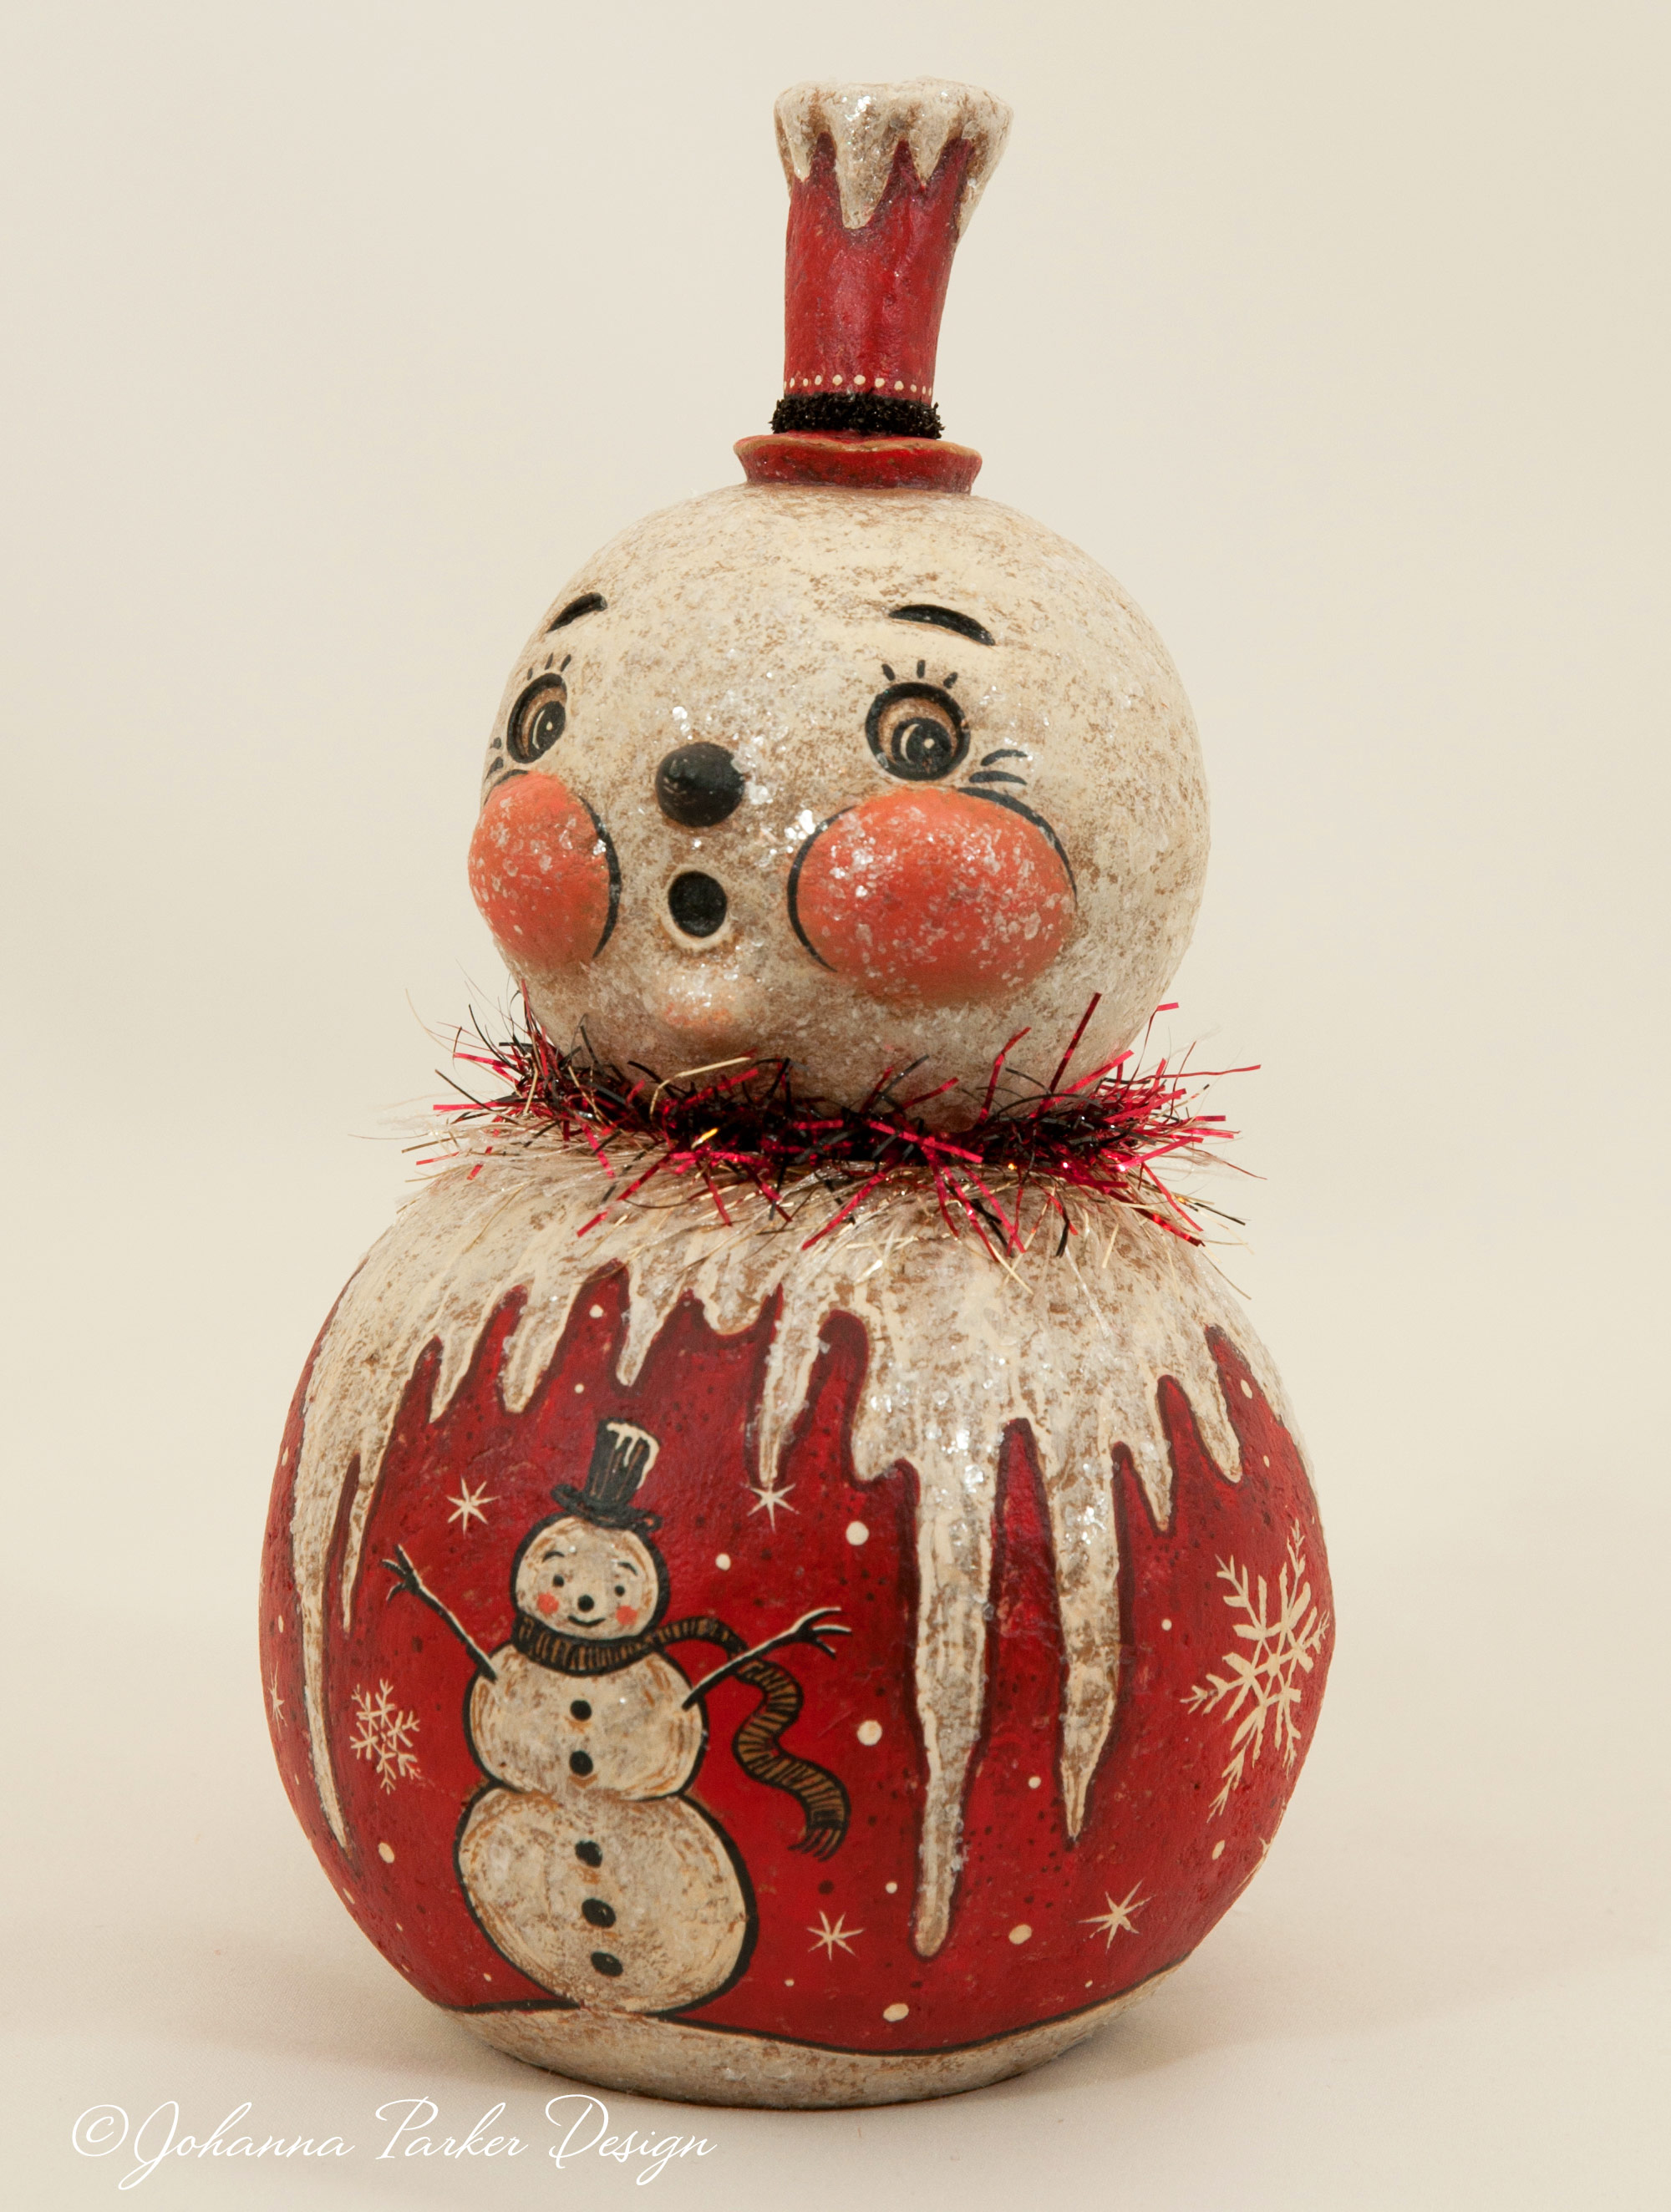 Icicle snowman